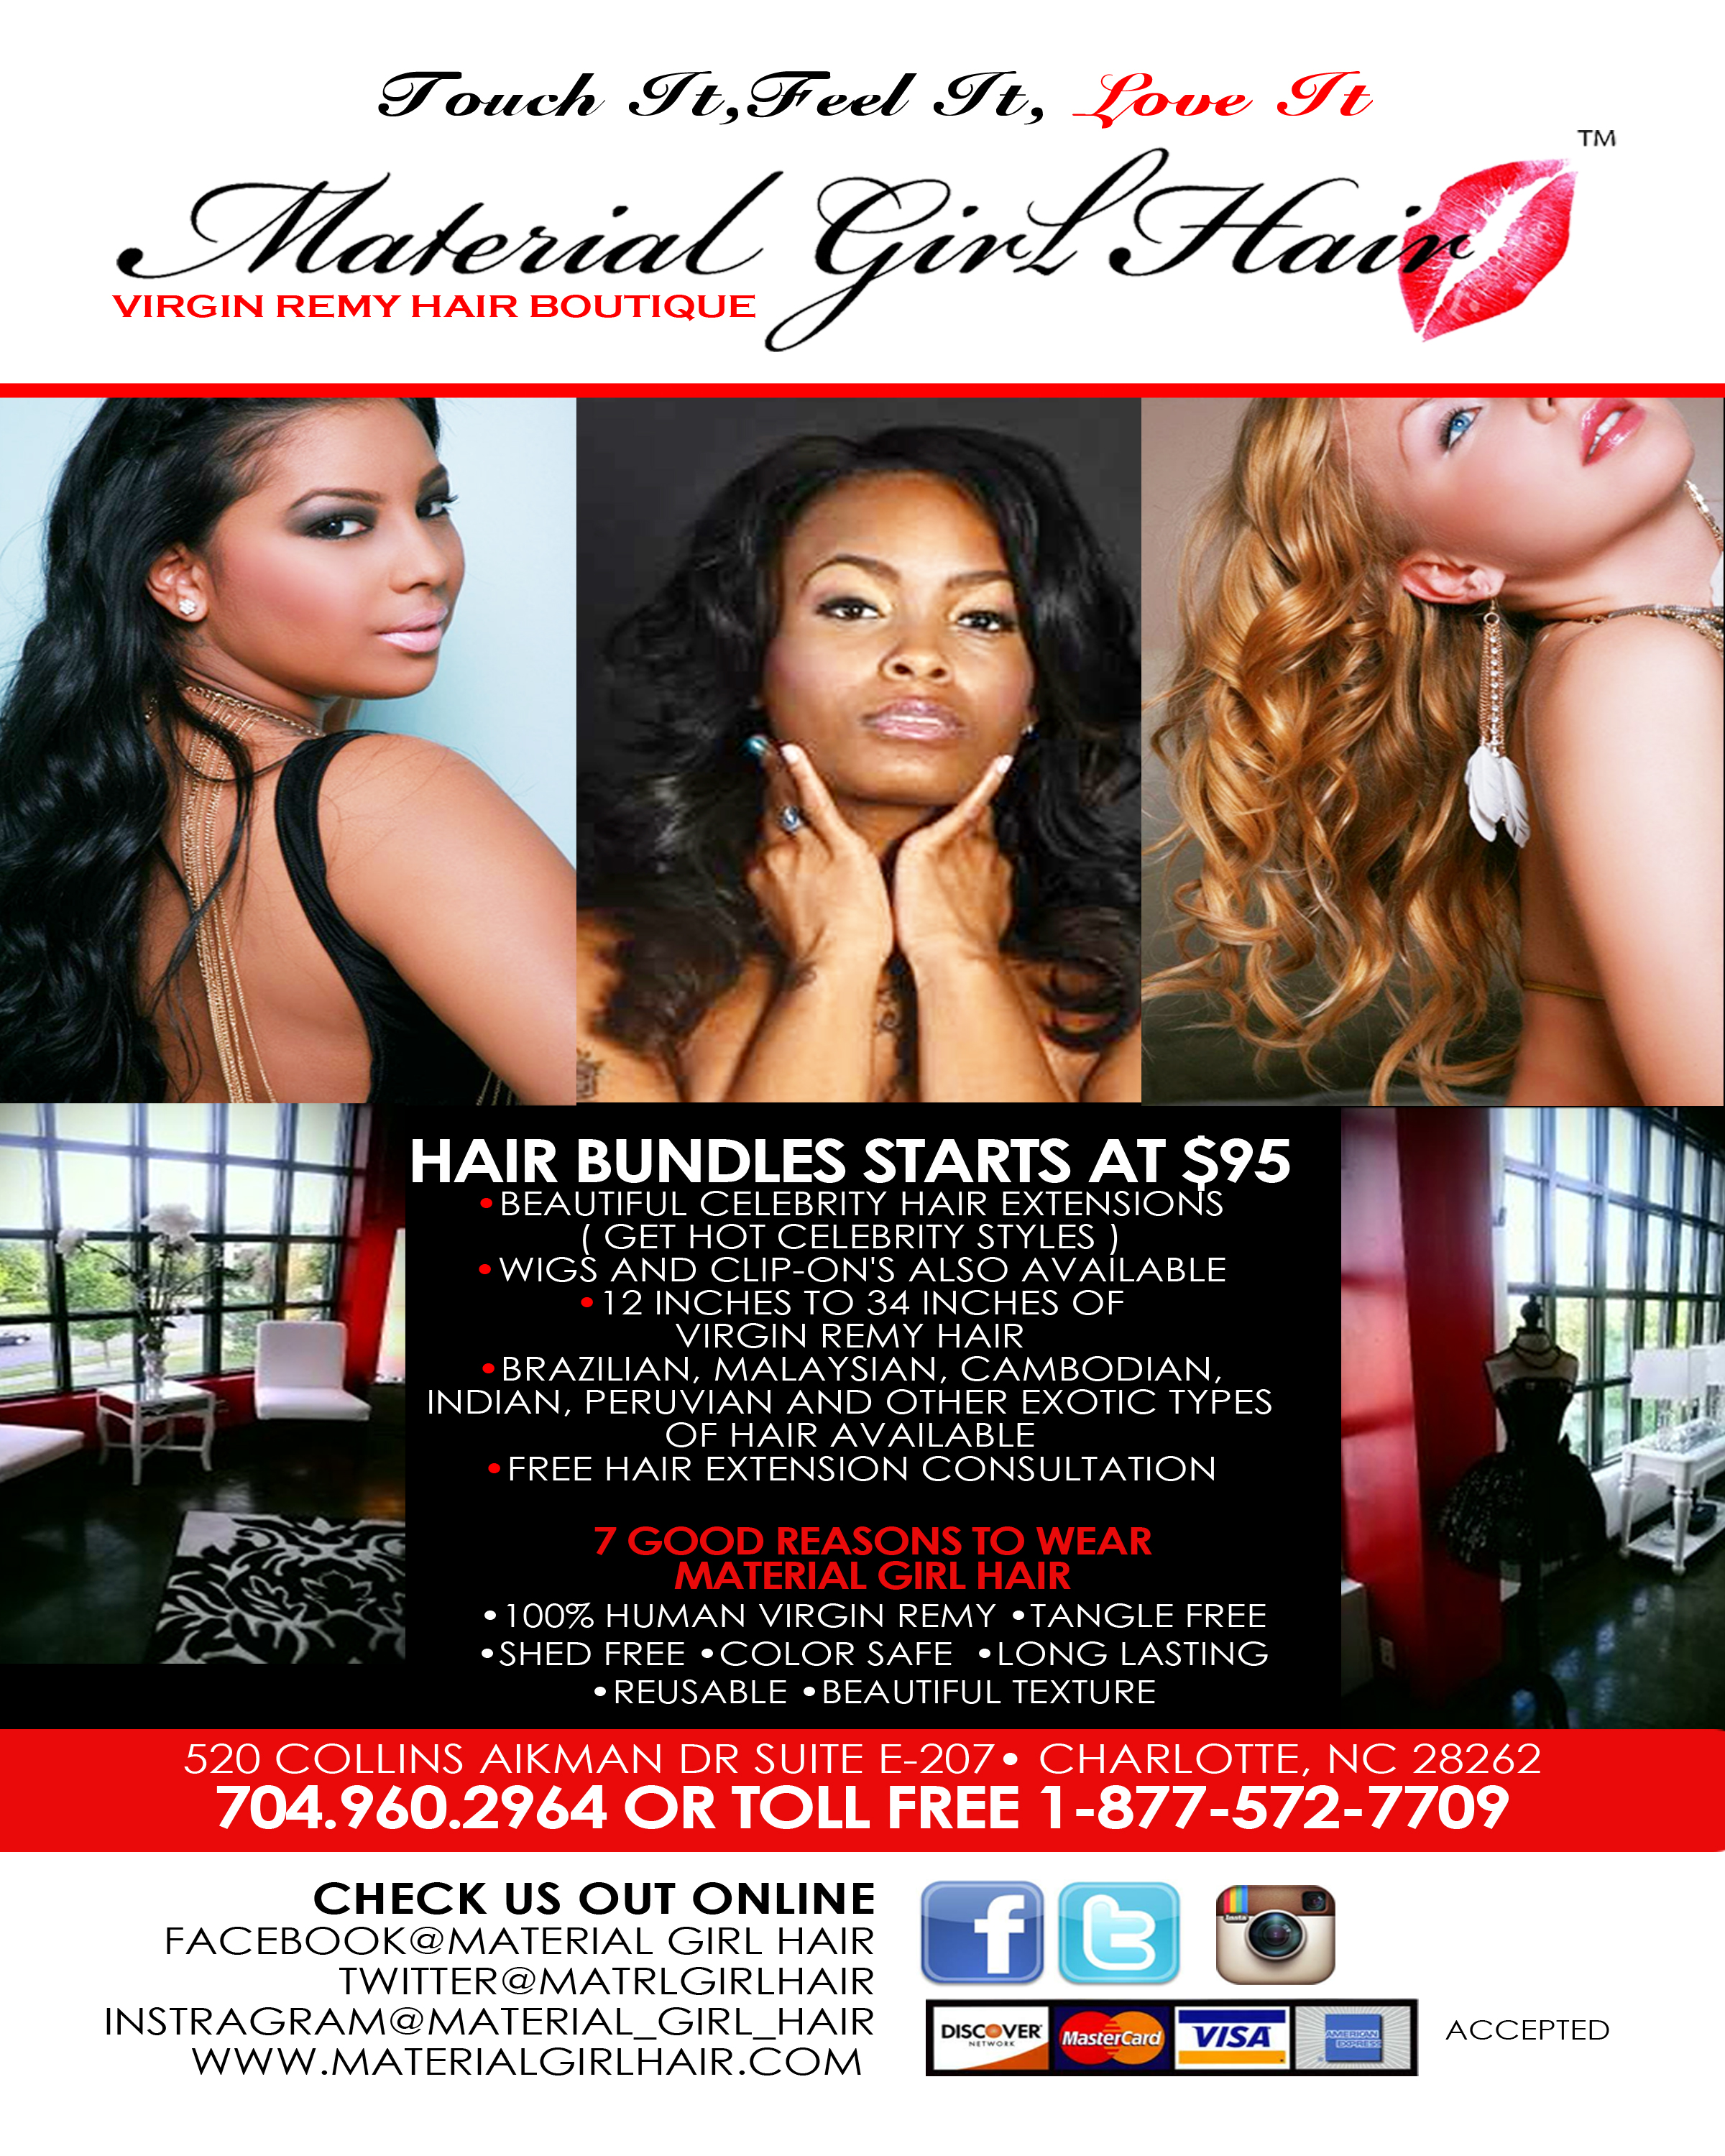 For Sisters Only 2013 Material Girl Hair Charlottehappening